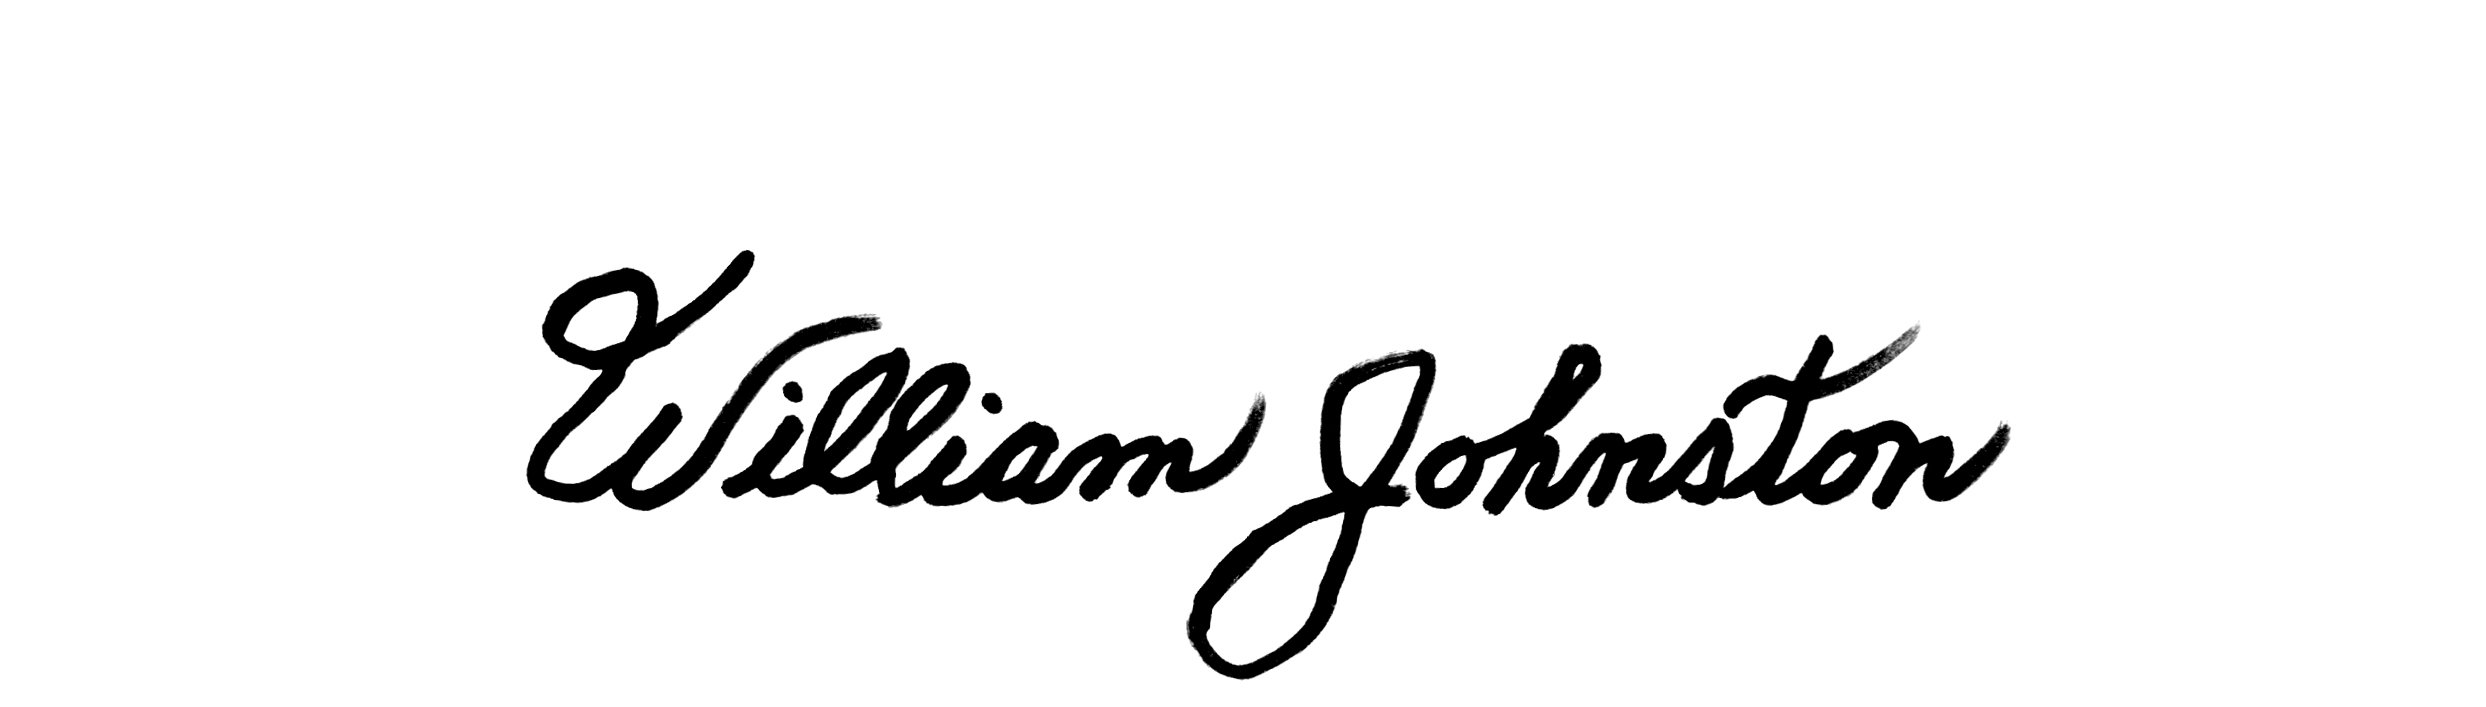 William Johnston Signature